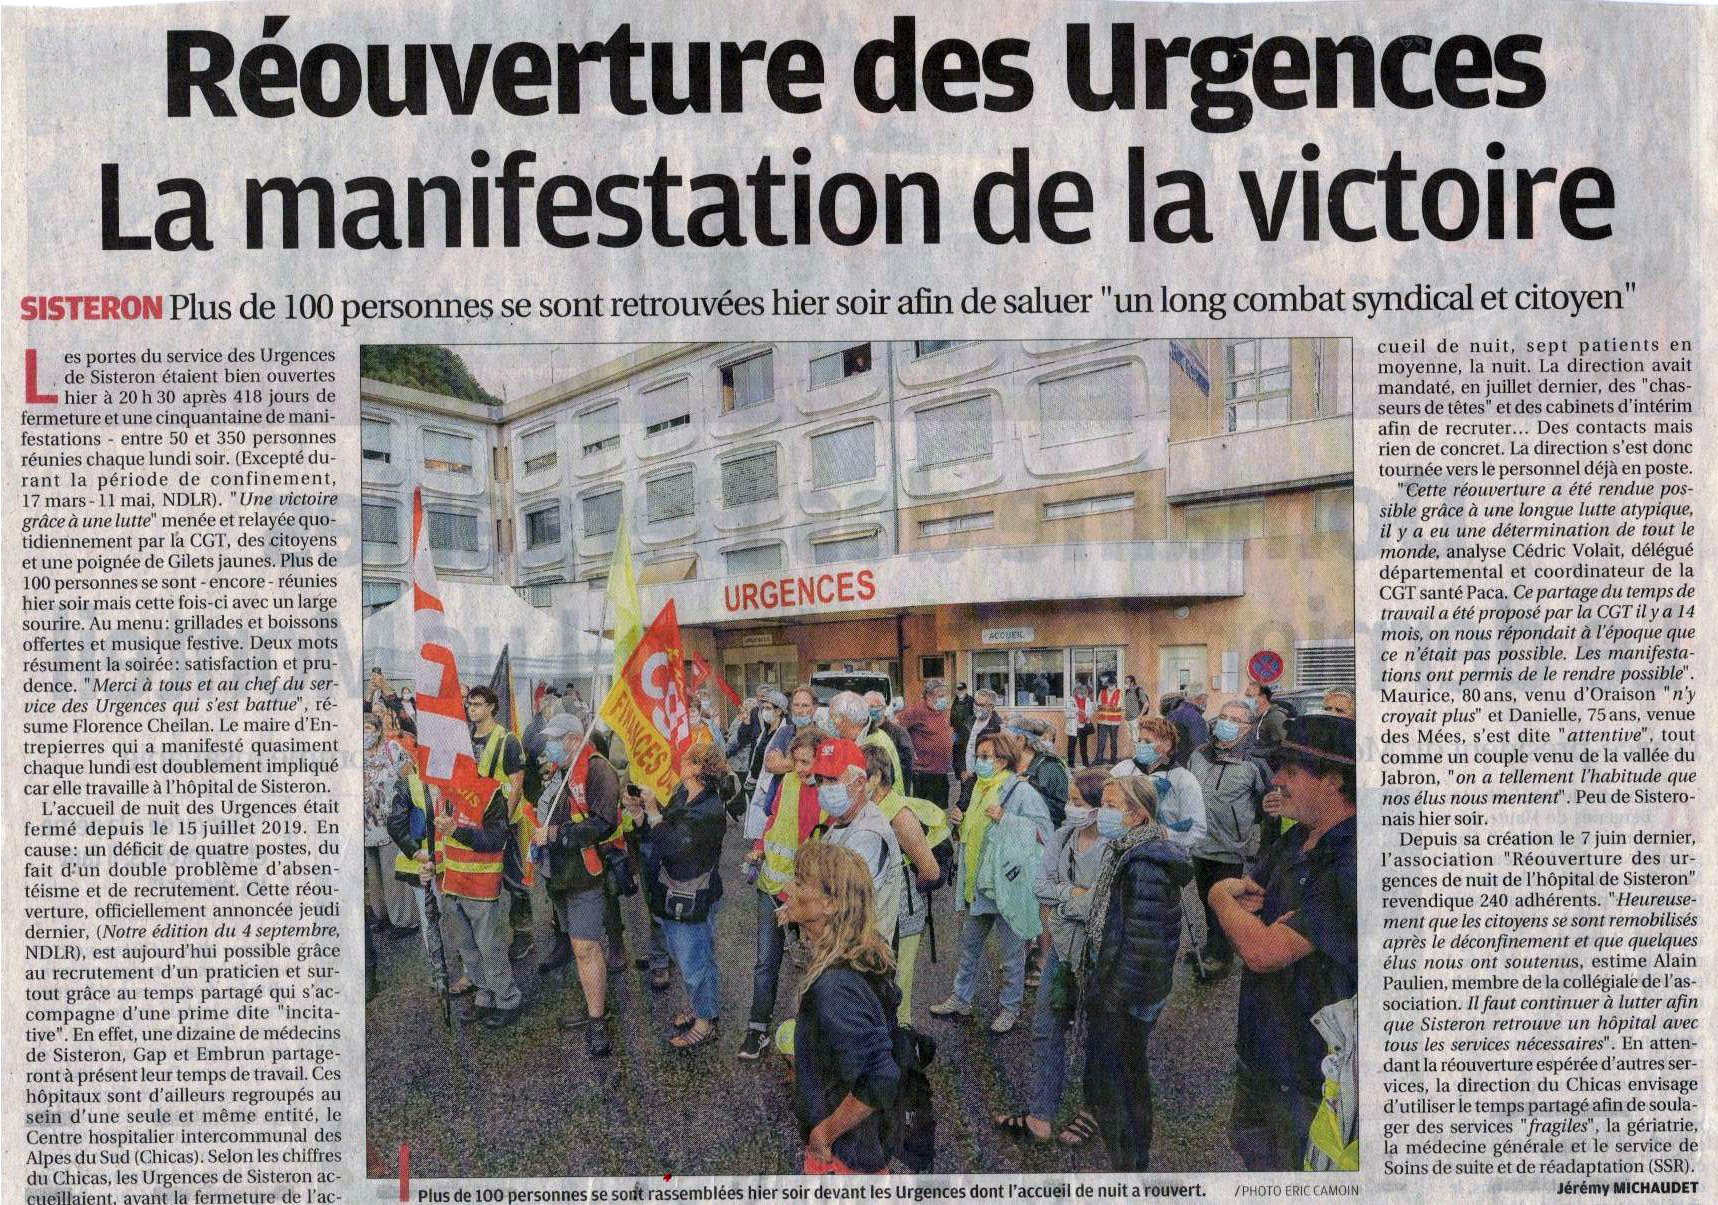 1290. Article La Provence du 8 septembre 2020